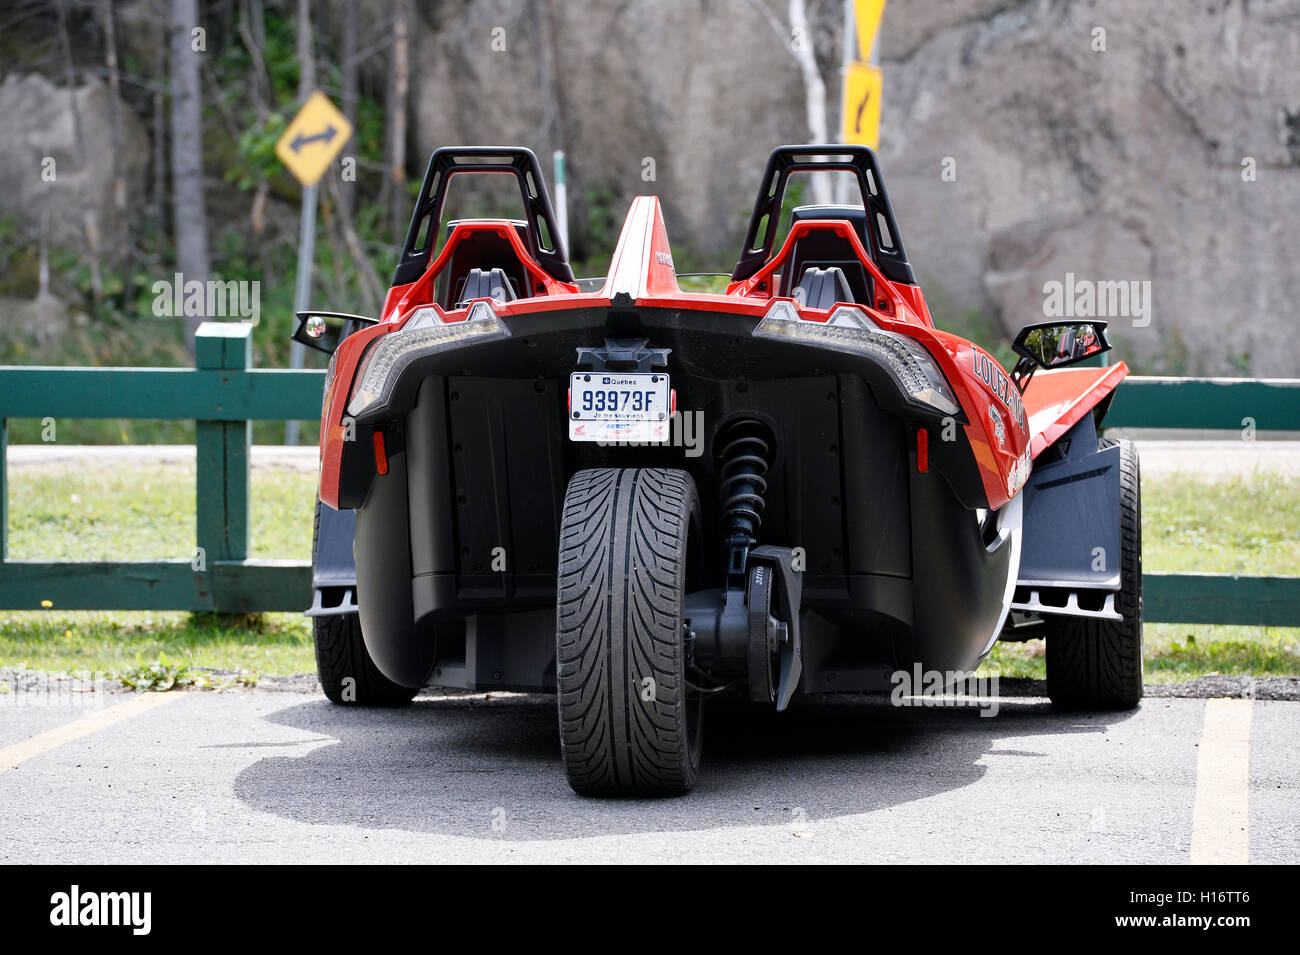 3 Wheel Car >> 3 Wheels Stock Photos 3 Wheels Stock Images Alamy